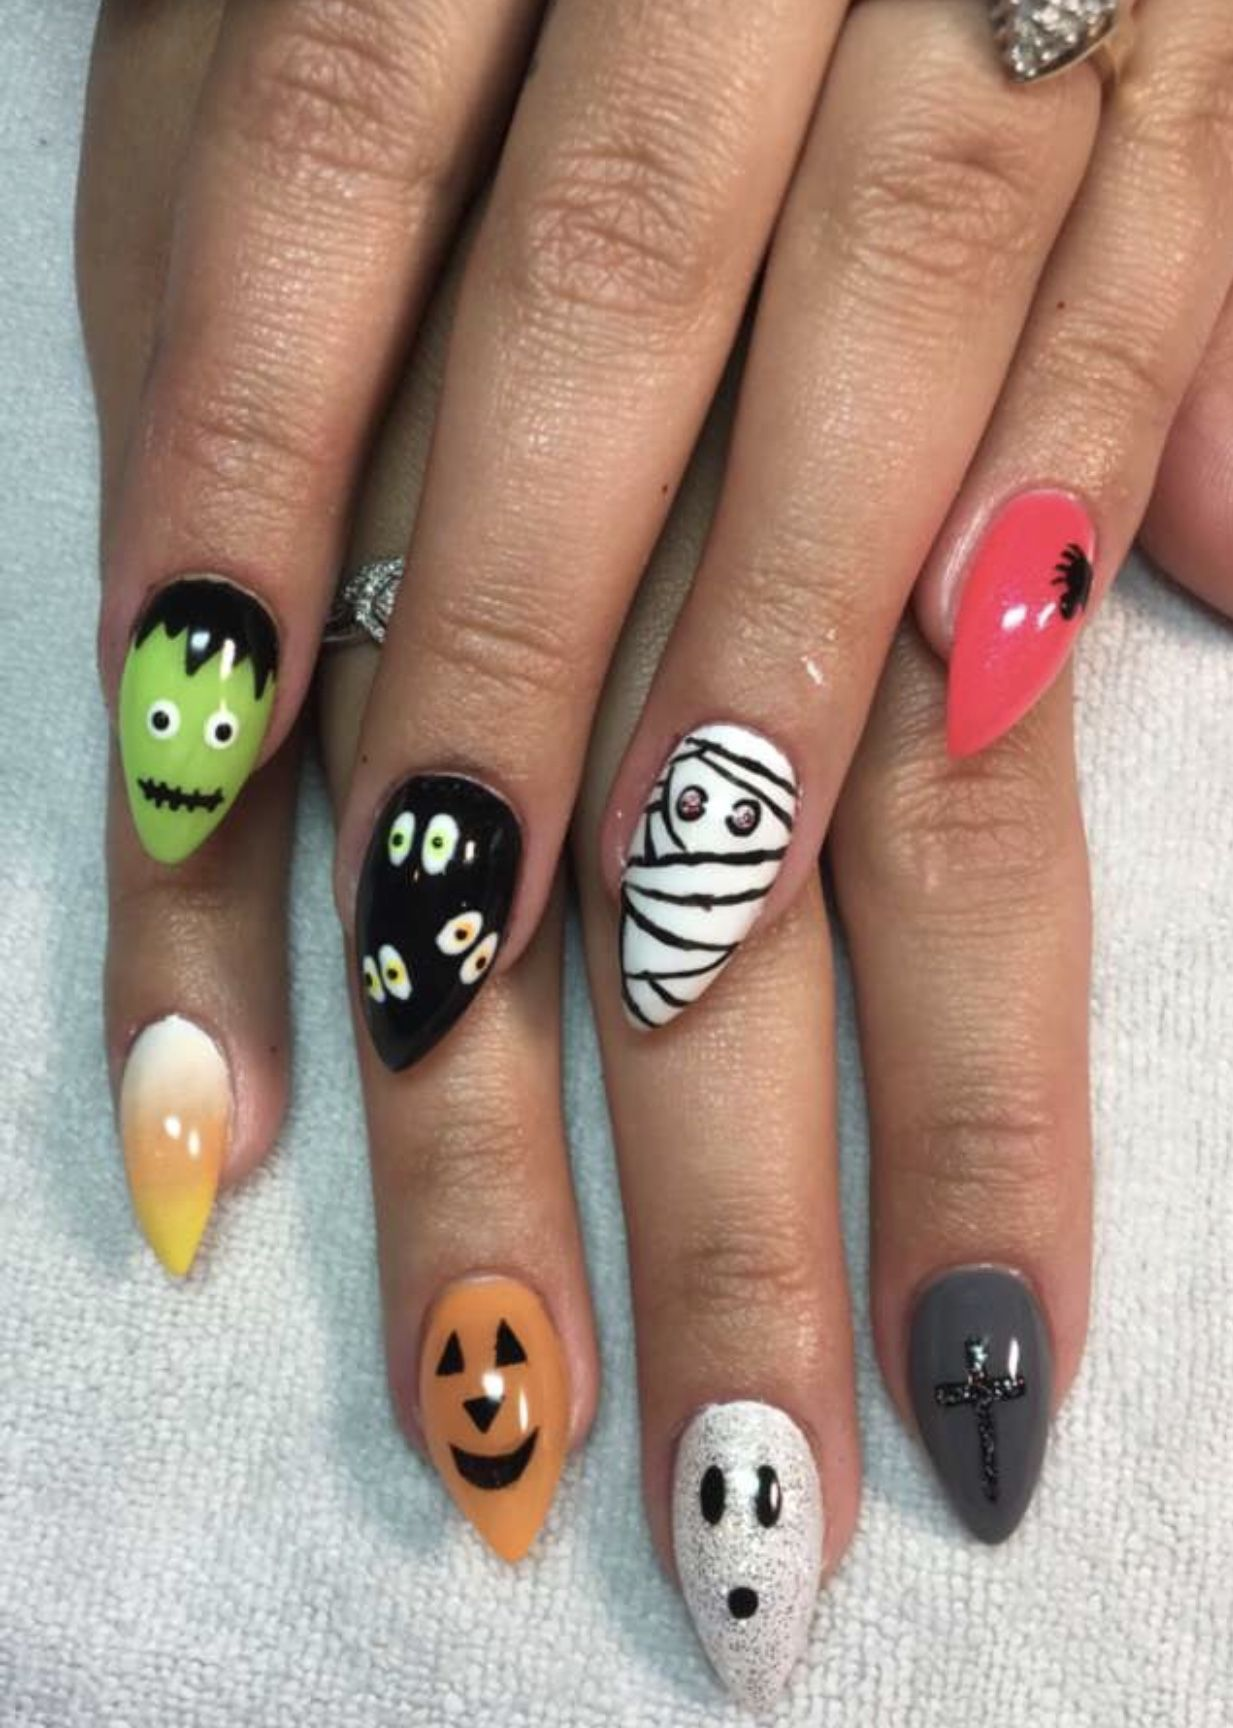 My Halloween set for 2018 | Nails, Halloween nails ...